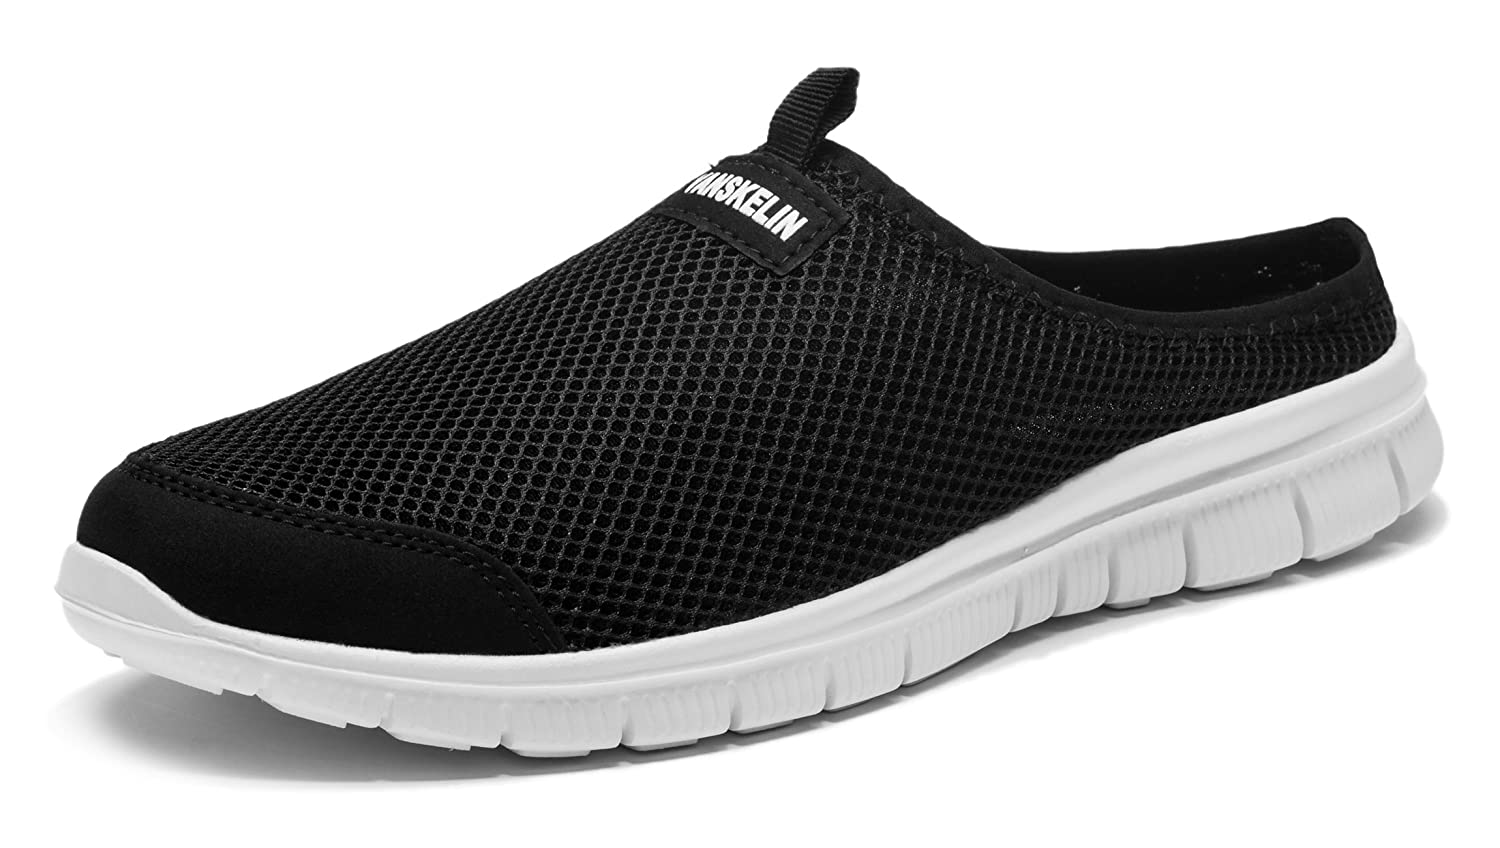 Men's Slip-On Shoes Comfortable slip-on shoes for men. Versatile for several situations, men's slip-on shoes are available in a variety of styles from backless to sandals and more!